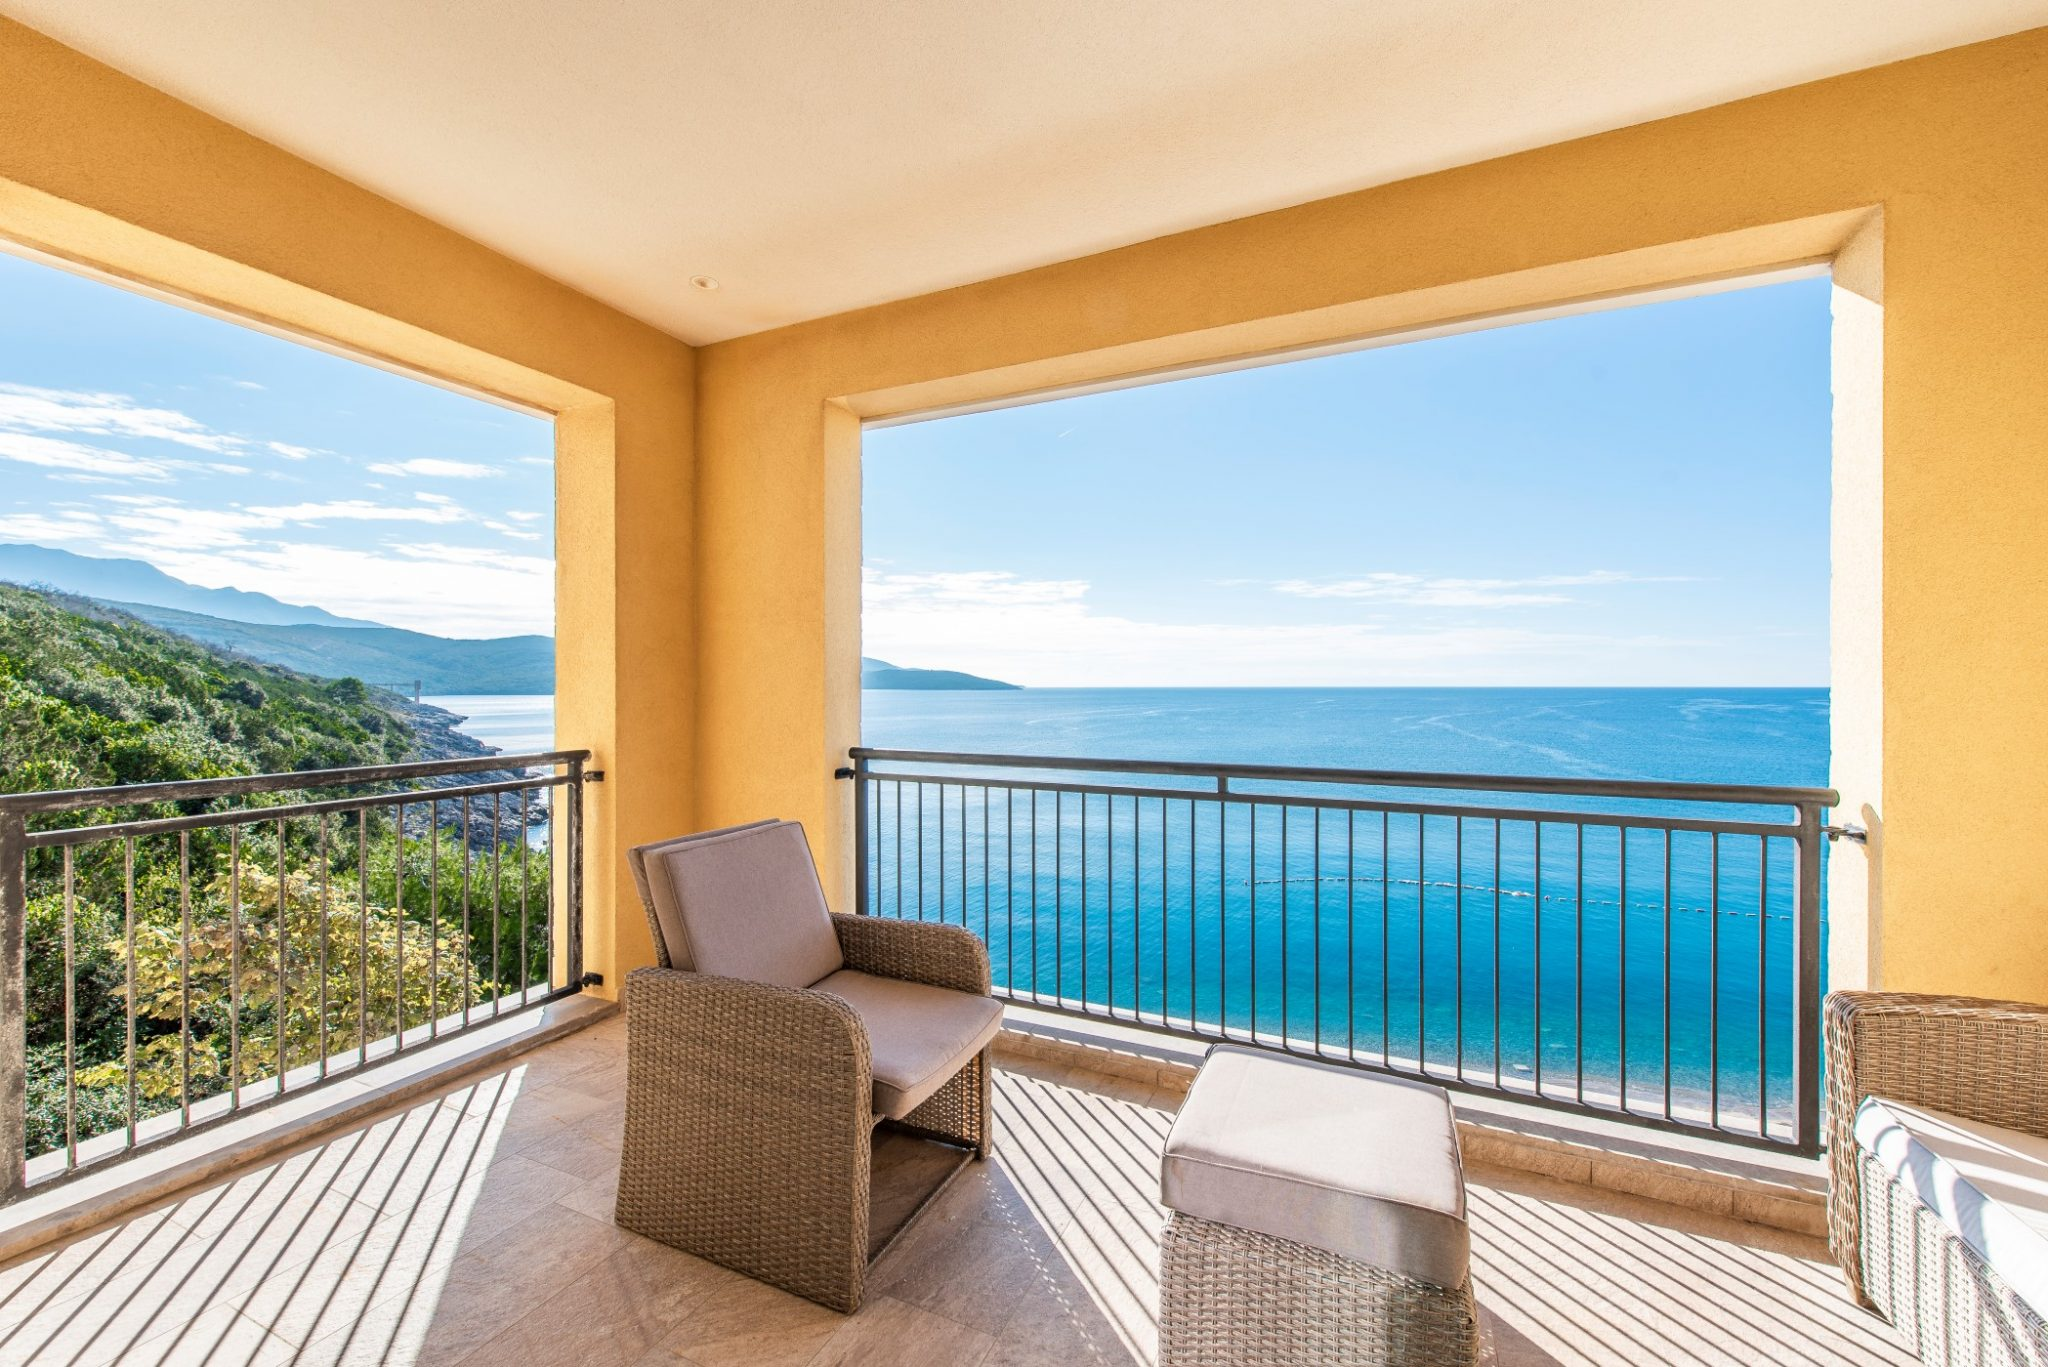 Luštica Bay - 1 bedroom apartment directly on the waterfront with a stunning panoramic seaview